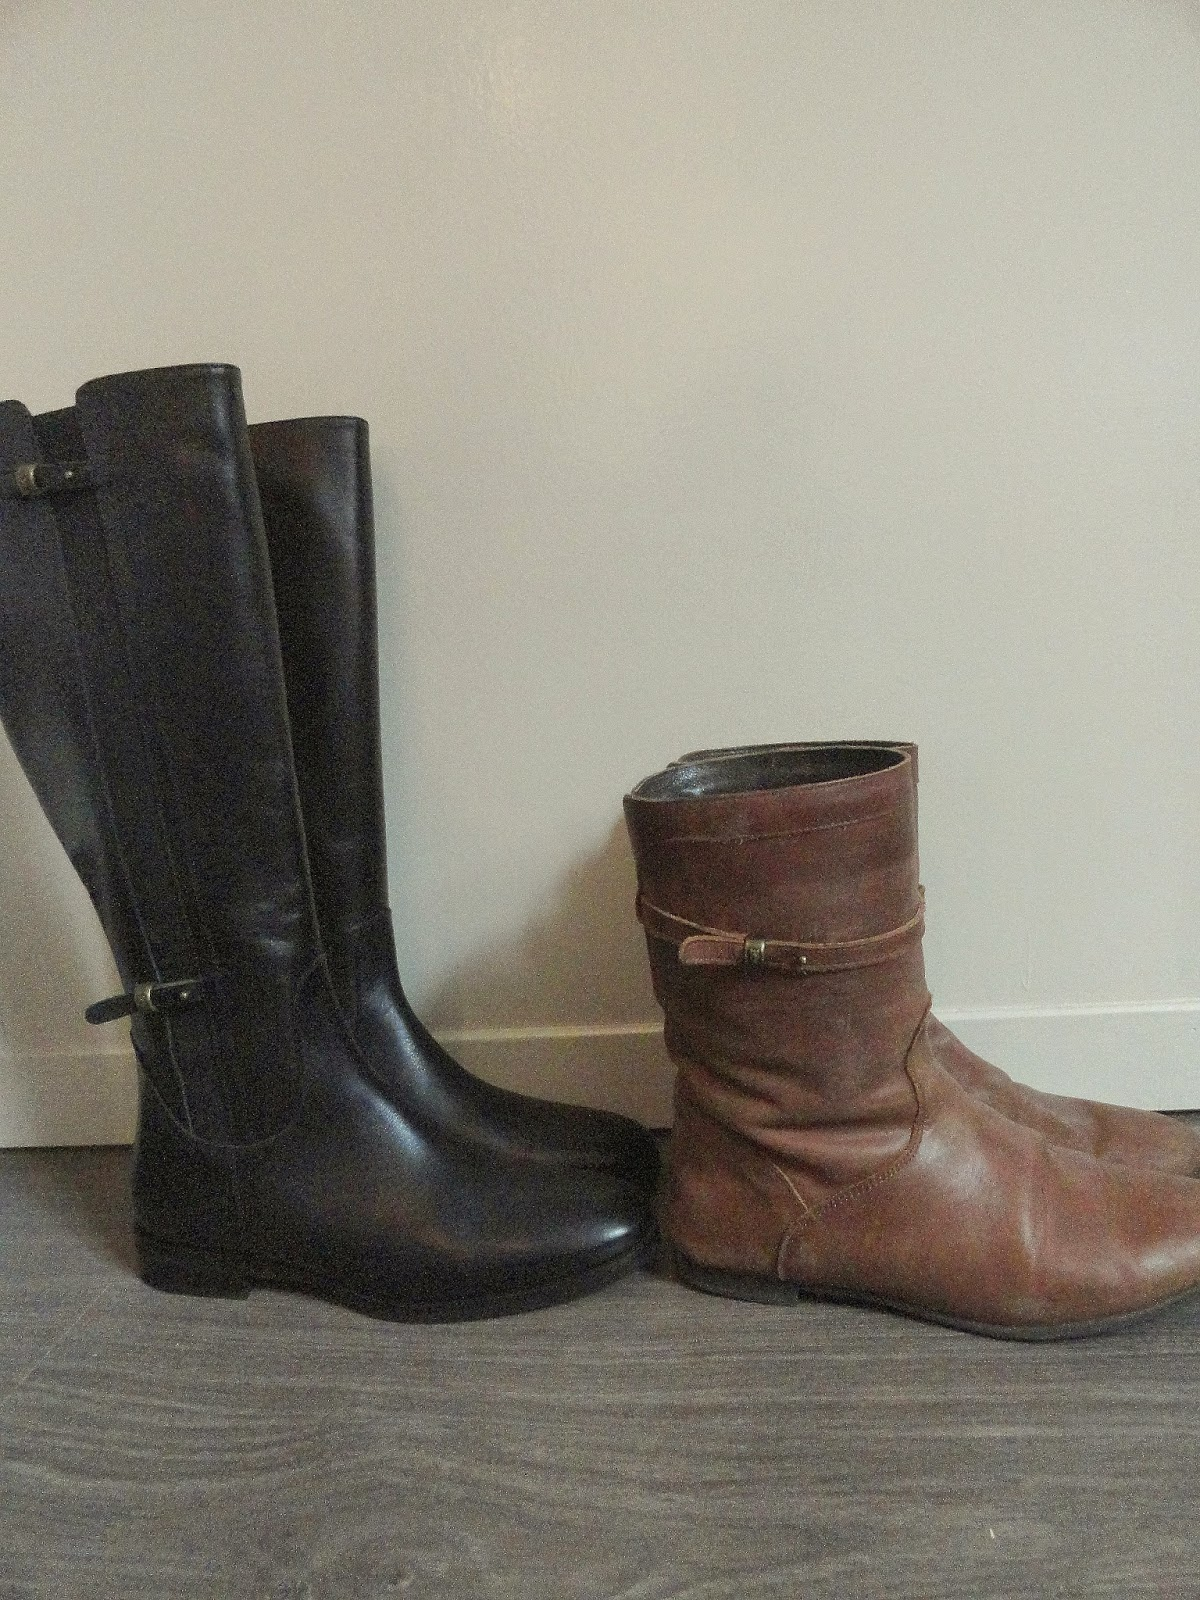 Clothes & Dreams: These boots are made for walking (shoplog): Black knee-high River Woods boots and brown River Woods boots